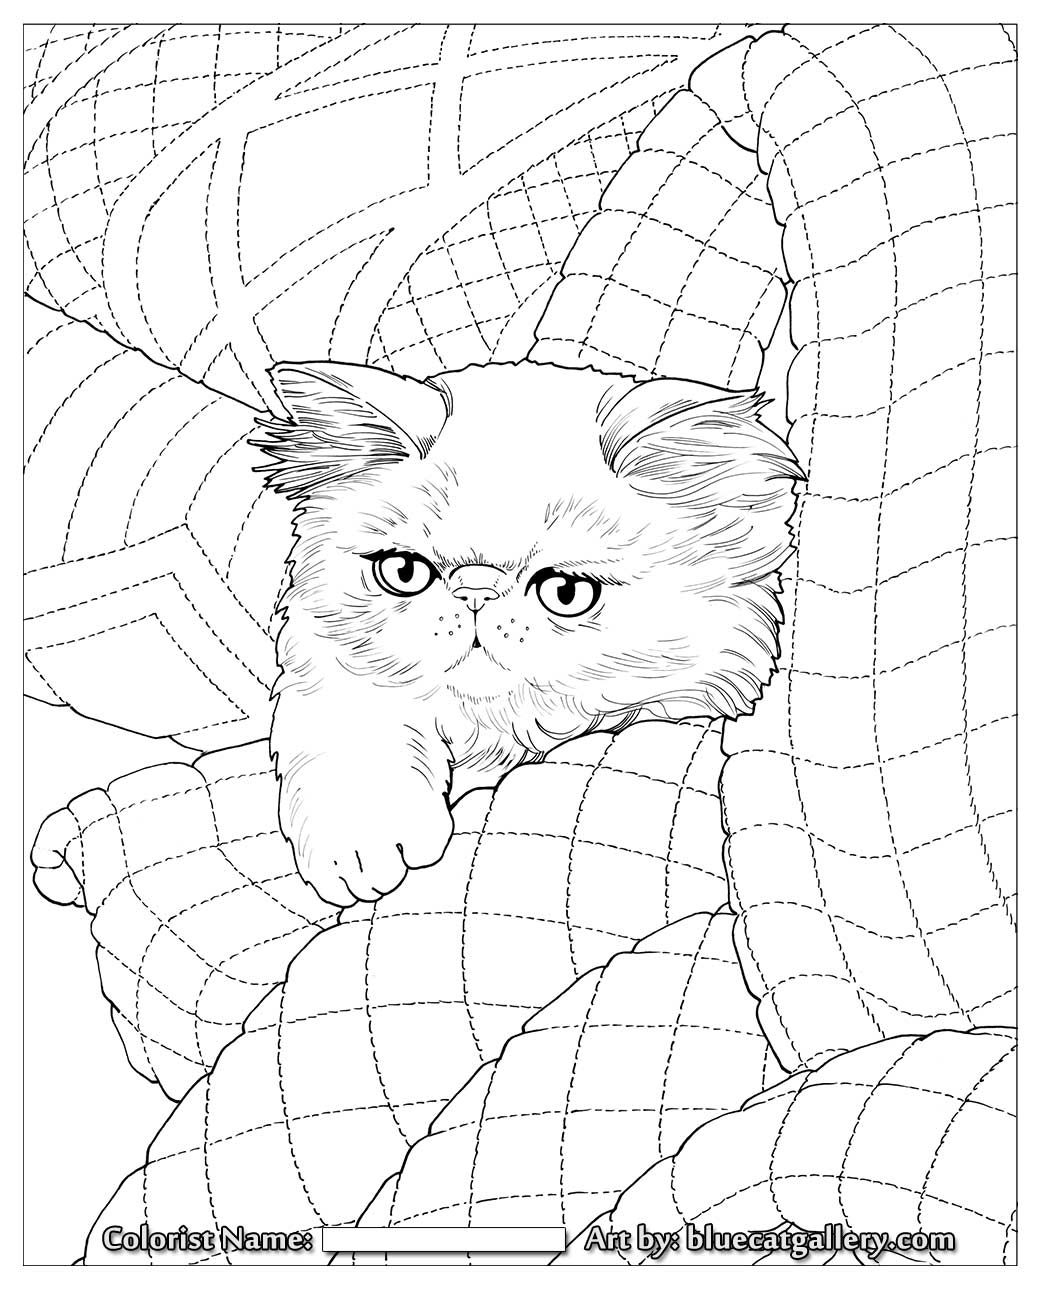 Whisker Haven Coloring Pages Download | Free Coloring Sheets